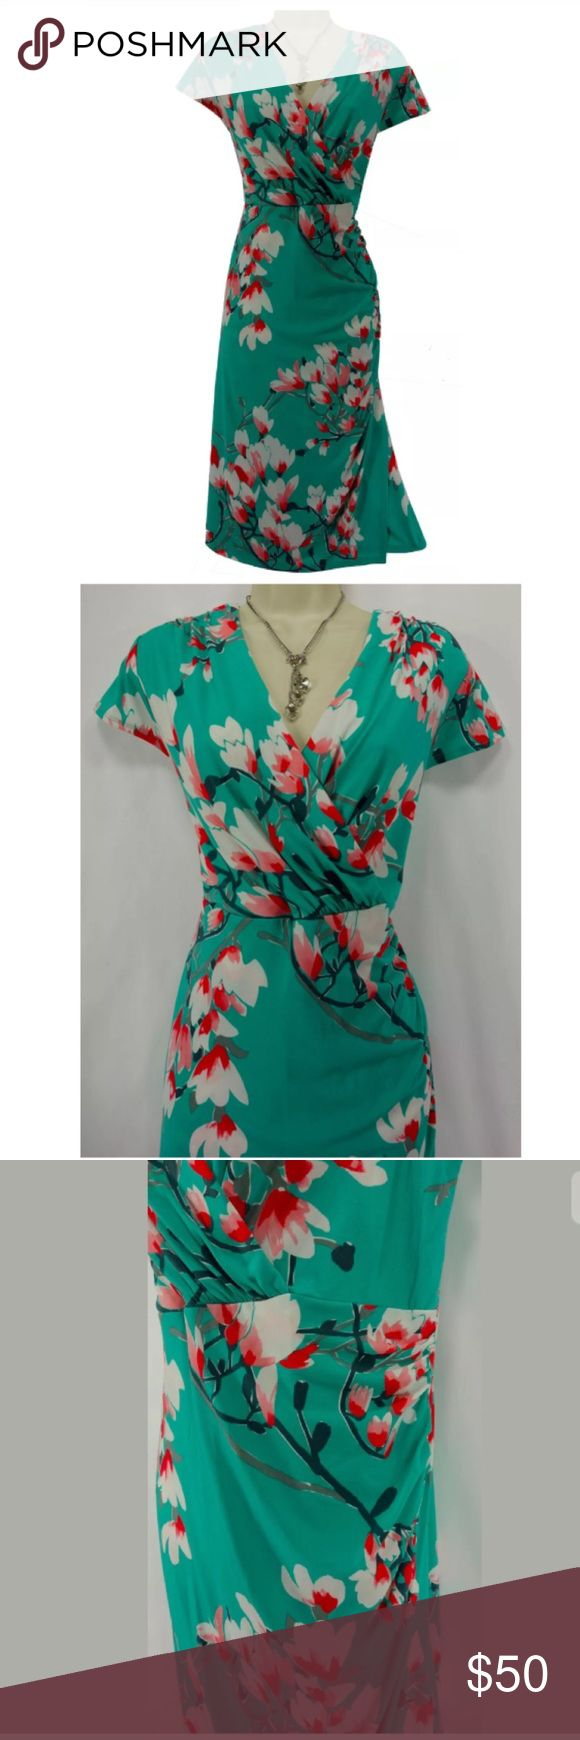 Selling this 14W 1X AQUA/CORAL FLORAL RUCHED DRESS Plus Size on Poshmark! My username is: sexycurvygirls. #shopmycloset #poshmark #fashion #shopping #style #forsale #Roz & Ali #Dresses & Skirts